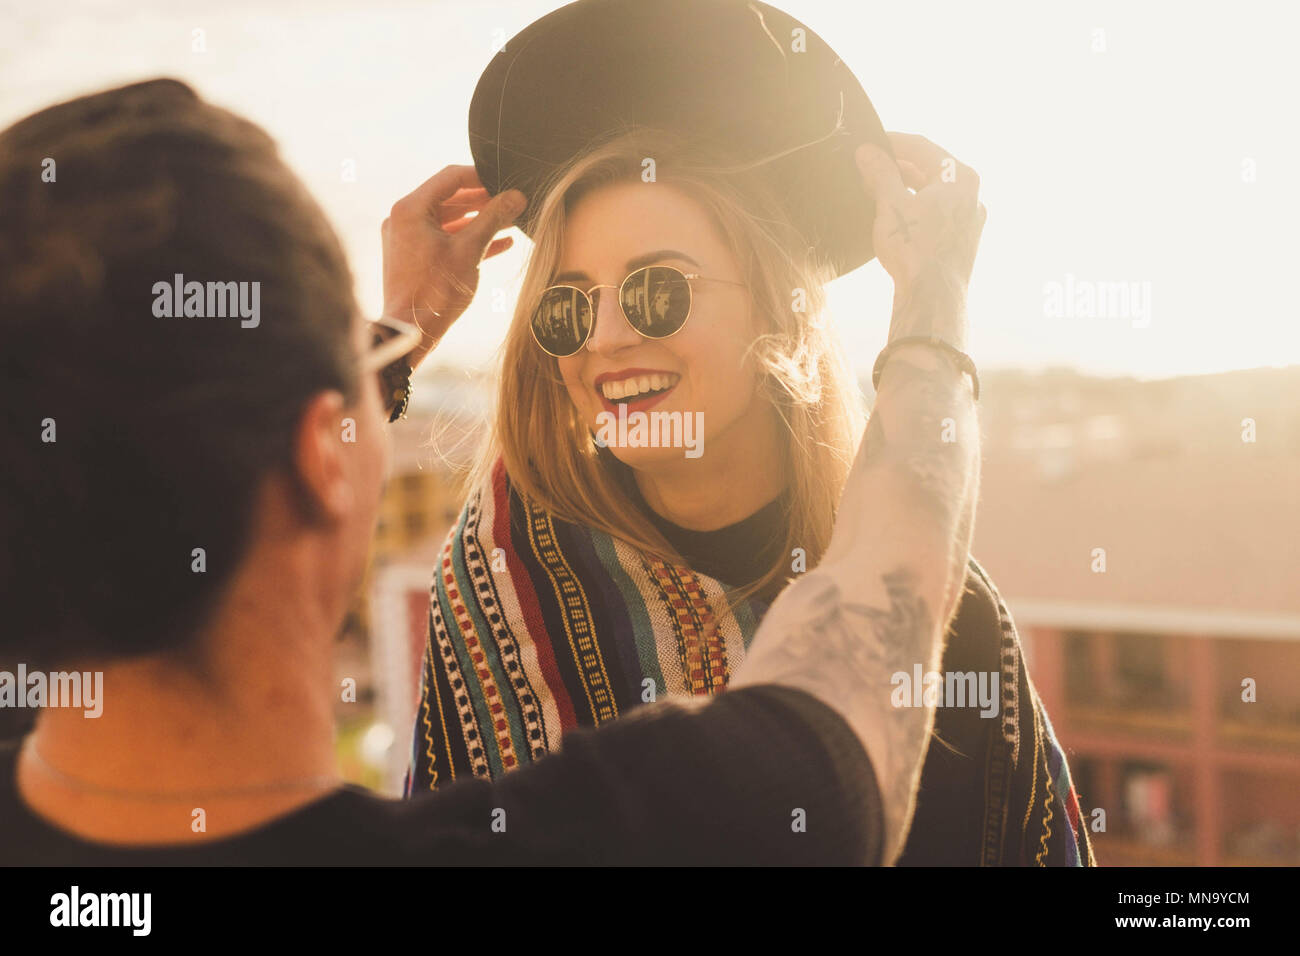 outdoor activity for couple of man and blonde young beautiful woman having fun together. he puts a hat on her head and she smile. sunlight and rooftop - Stock Image